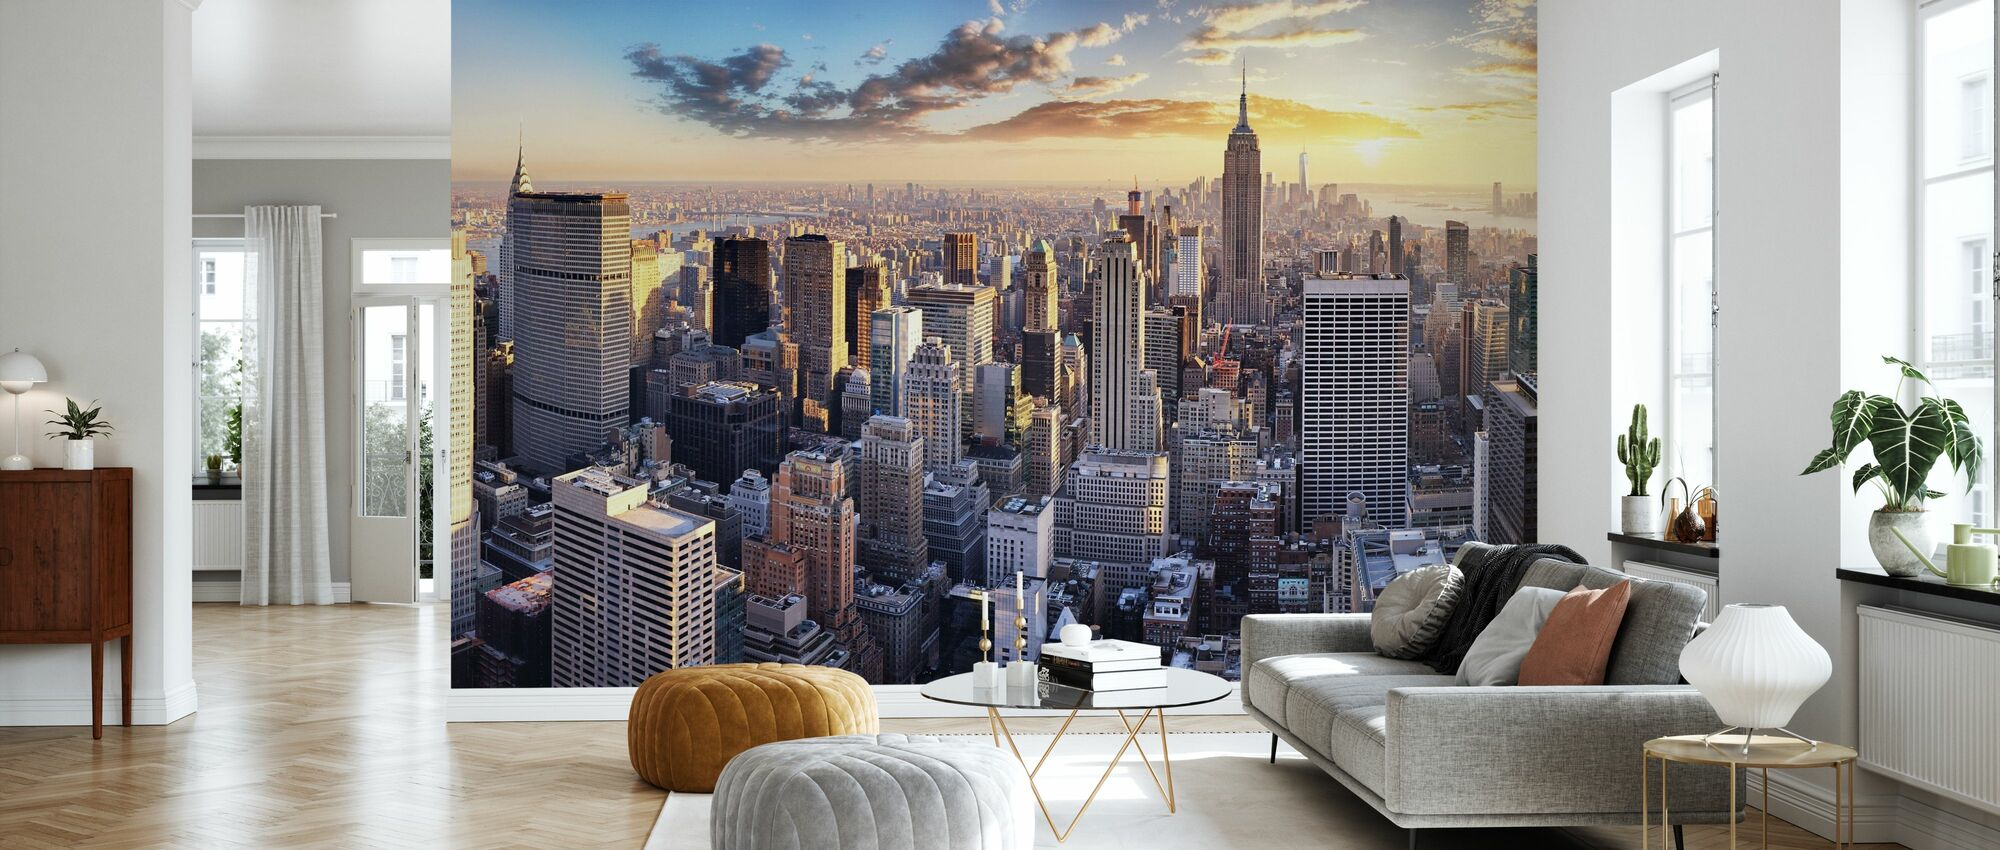 New York Skyline - Wallpaper - Living Room